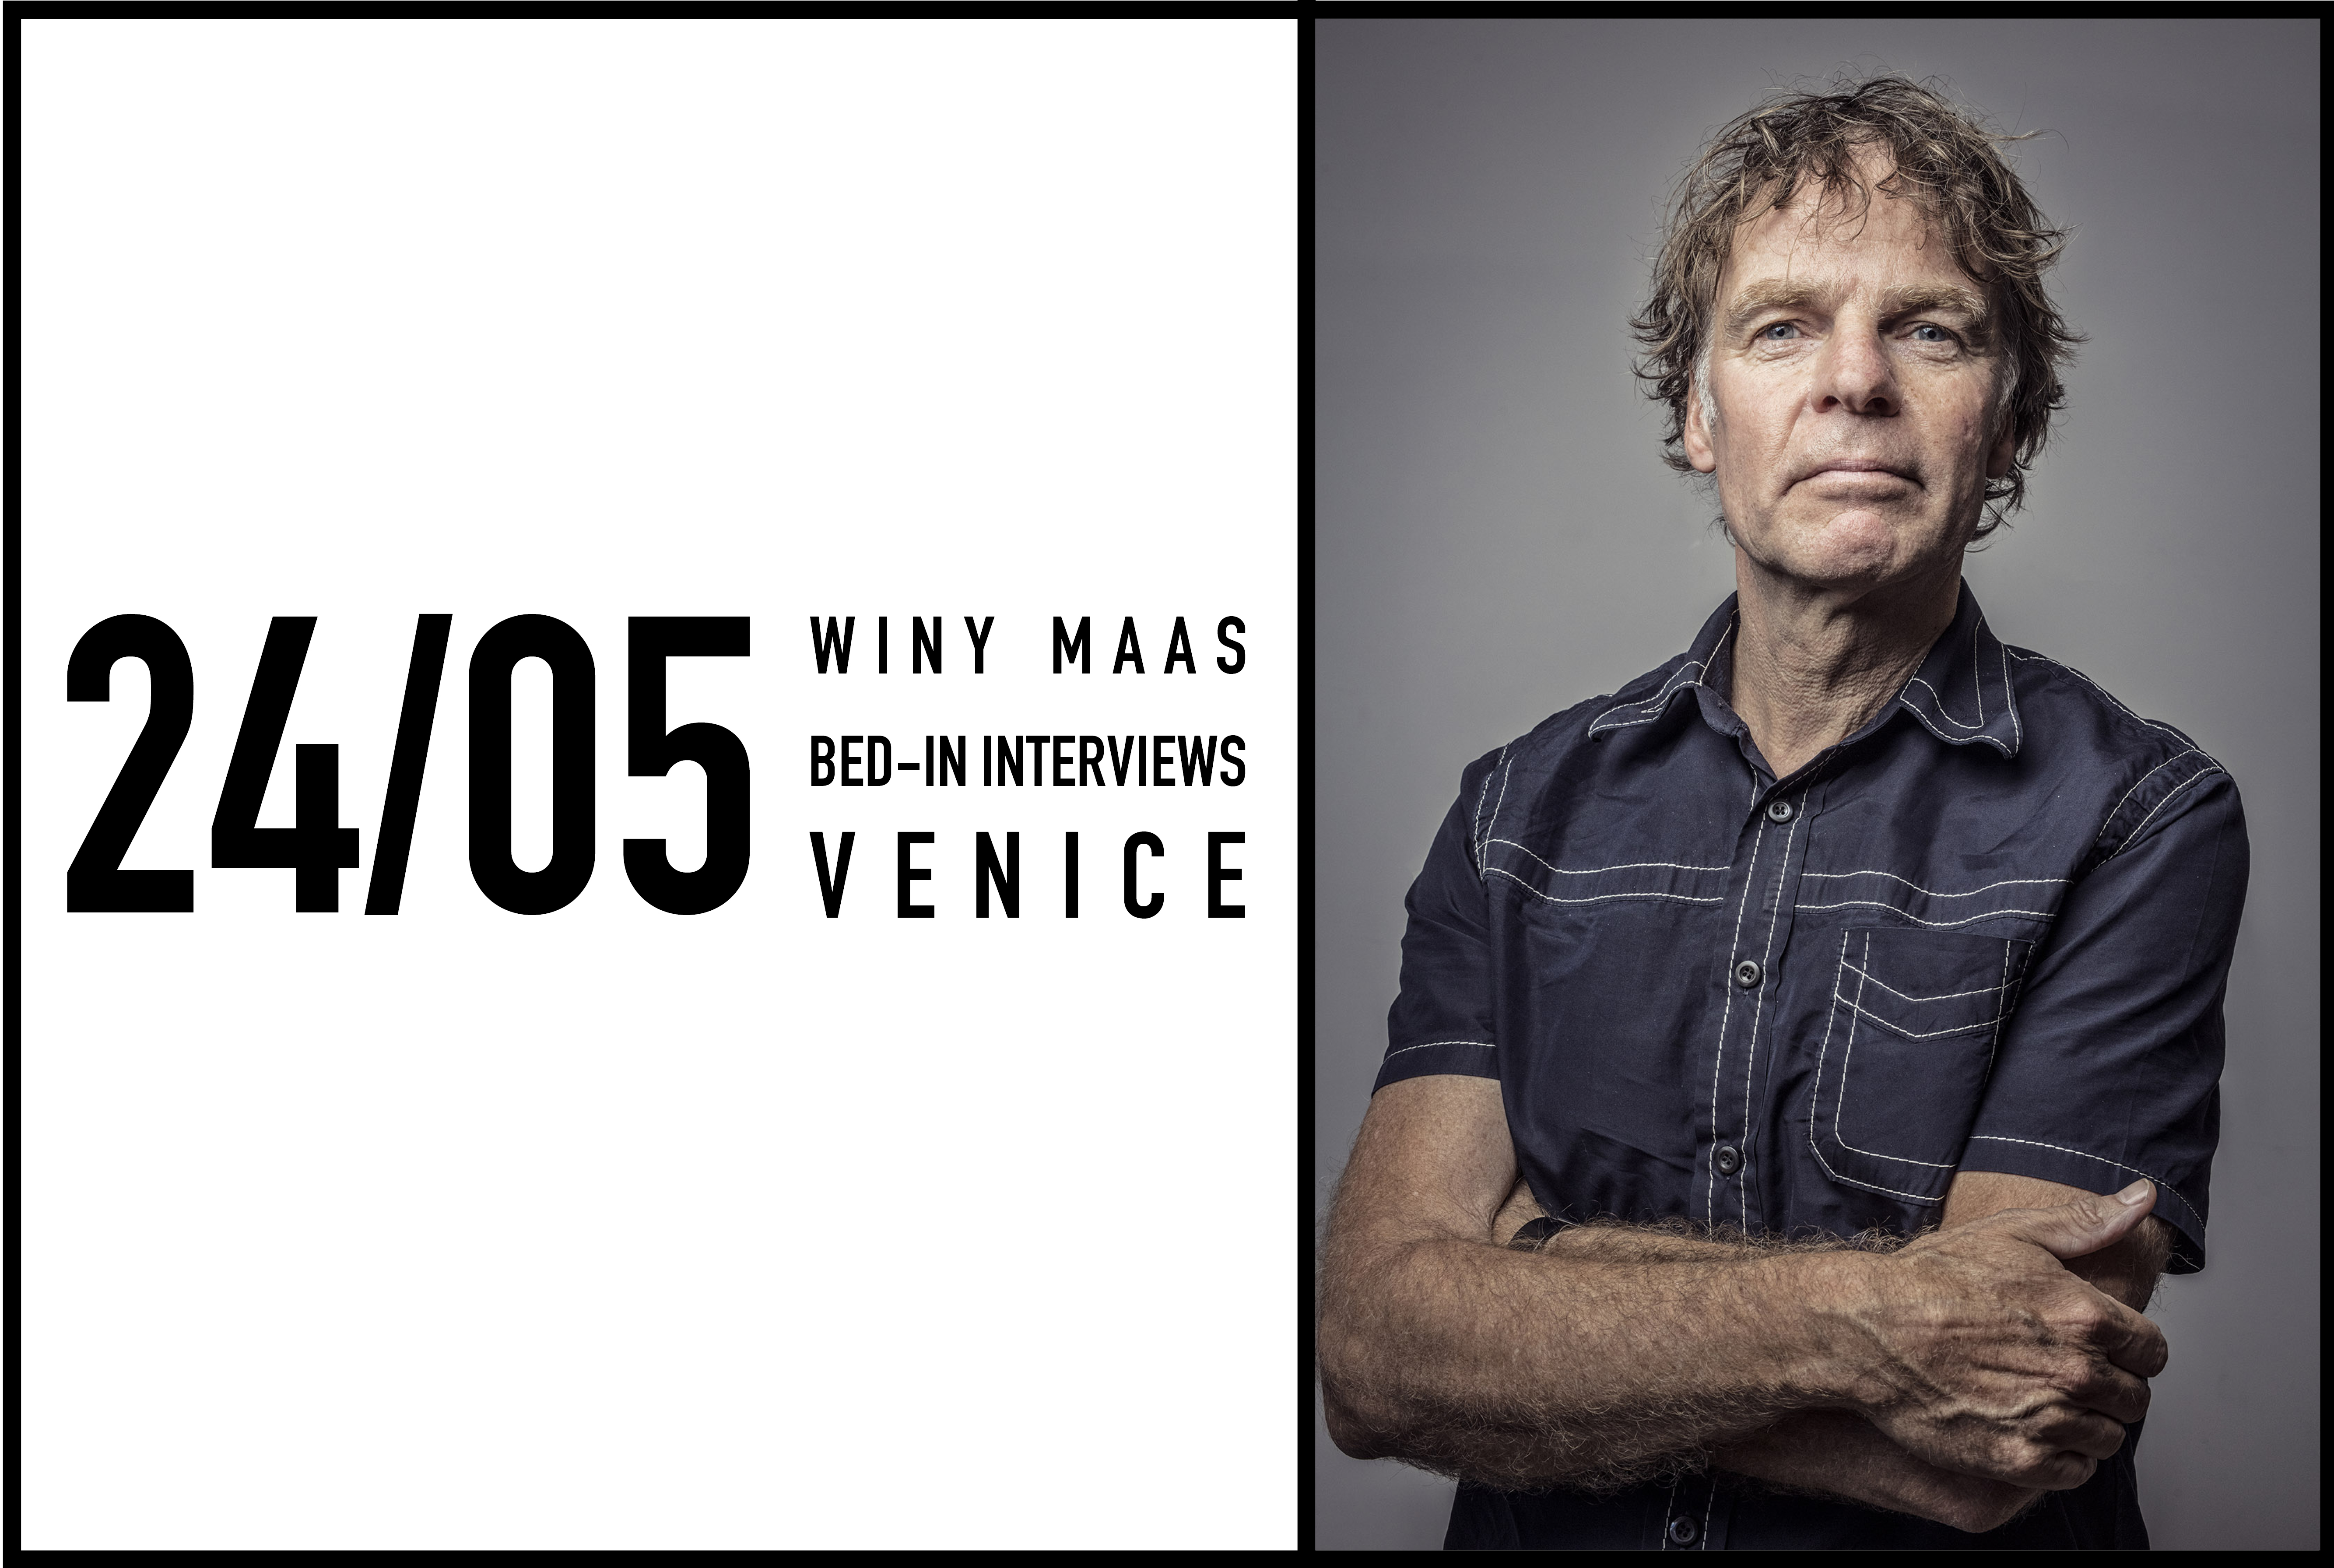 Winy Maas to give a Bed-In interview in Venice